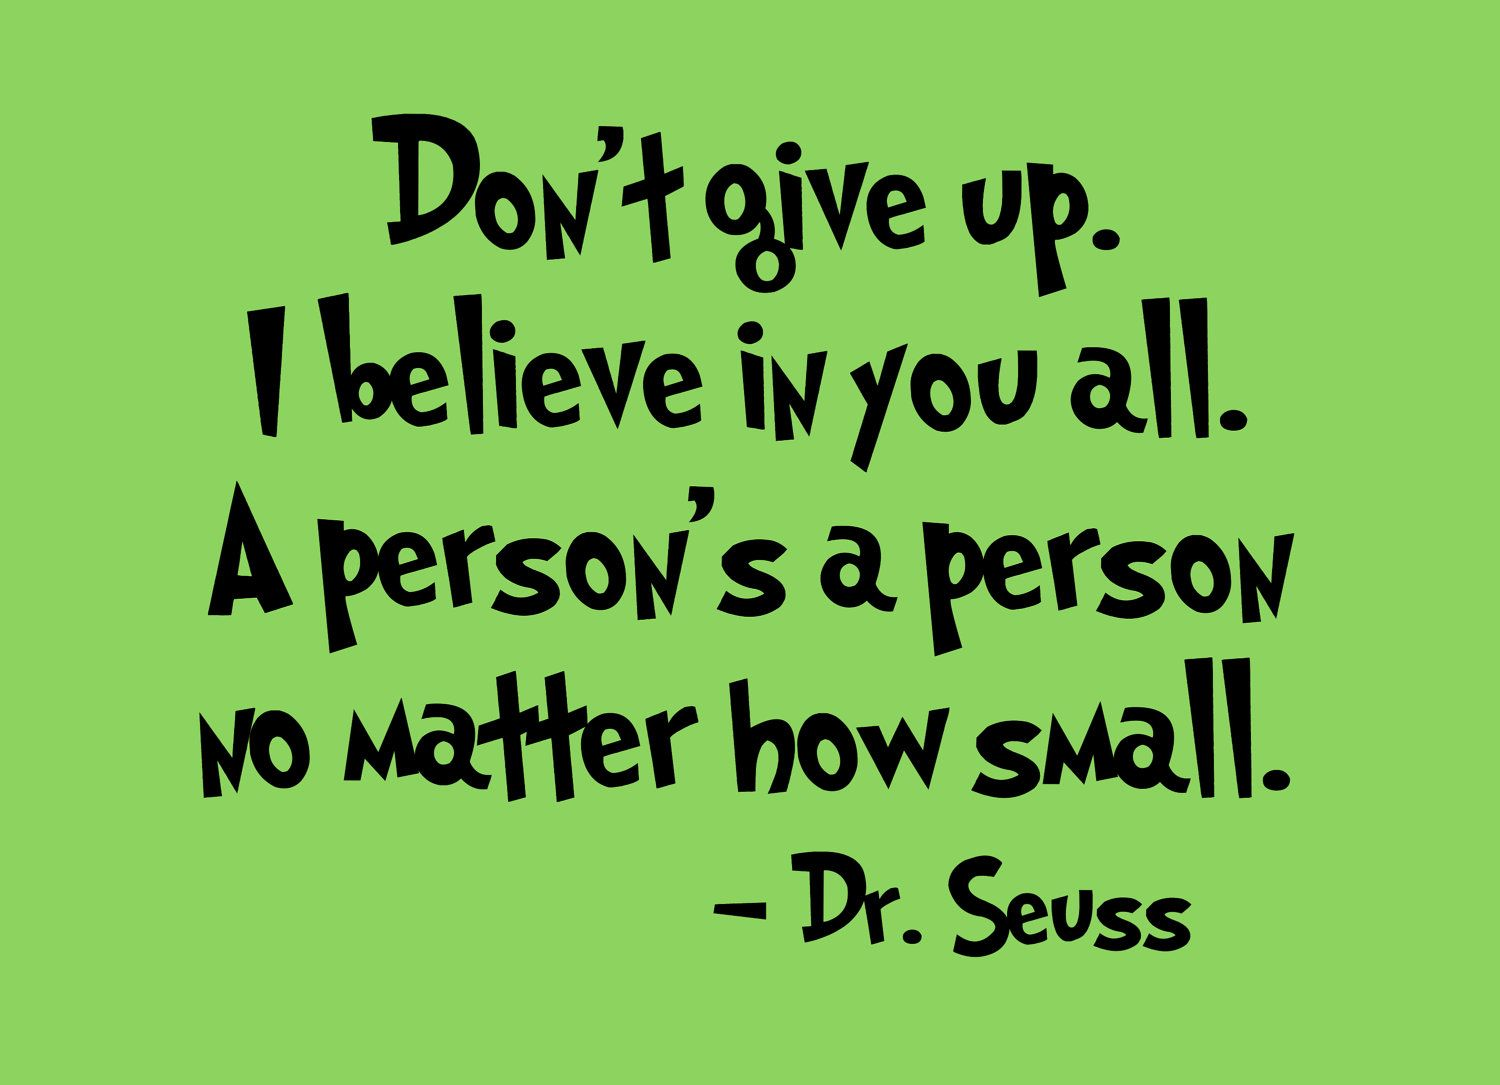 Celebrate dr seuss birthday or anyway with these free dr seuss quote - Inspiration Wednesday Quotes Dr Seussconfidence